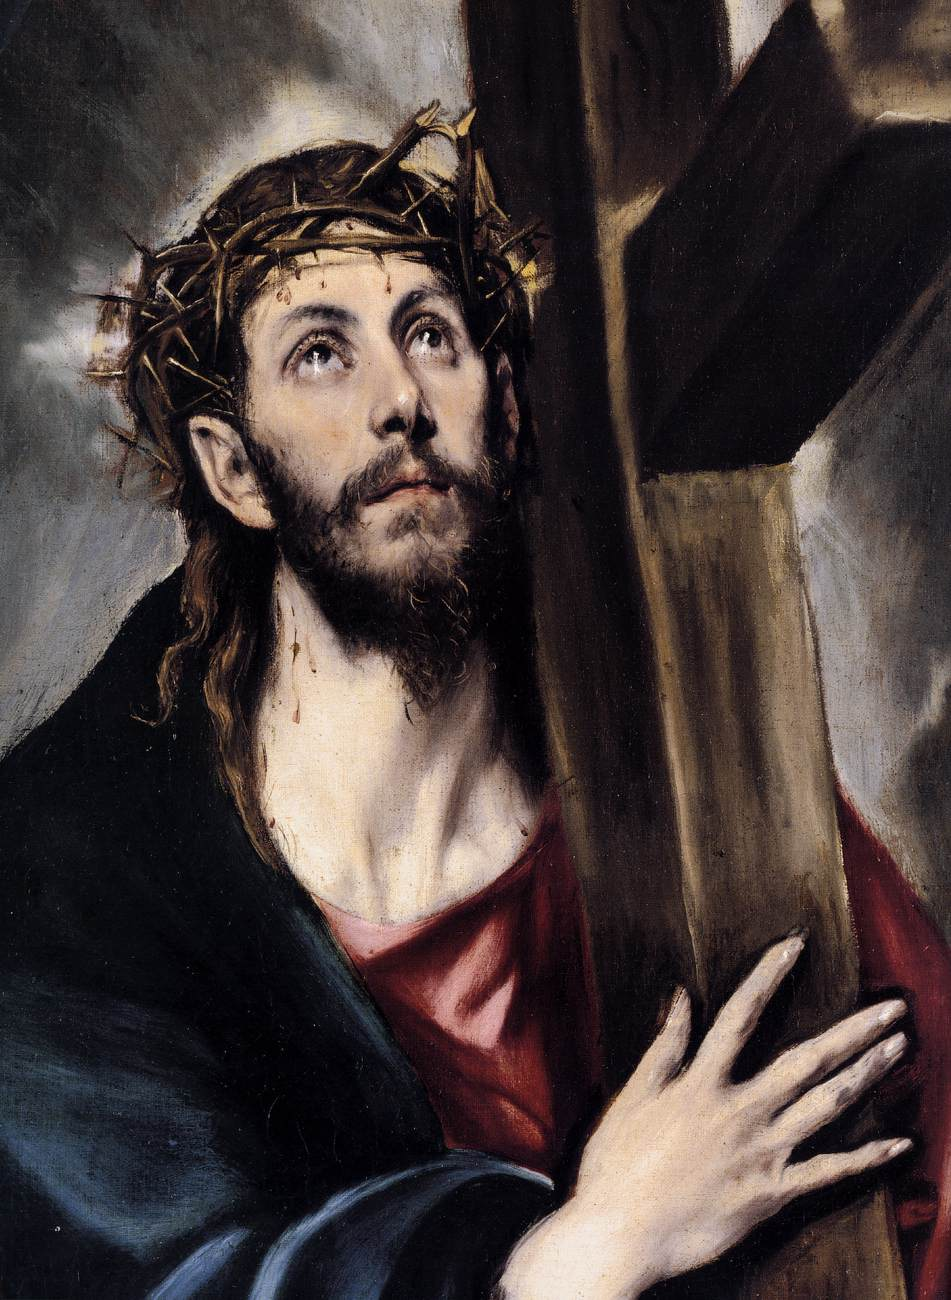 christ-carrying-the-cross-by-el-greco-1580.jpg